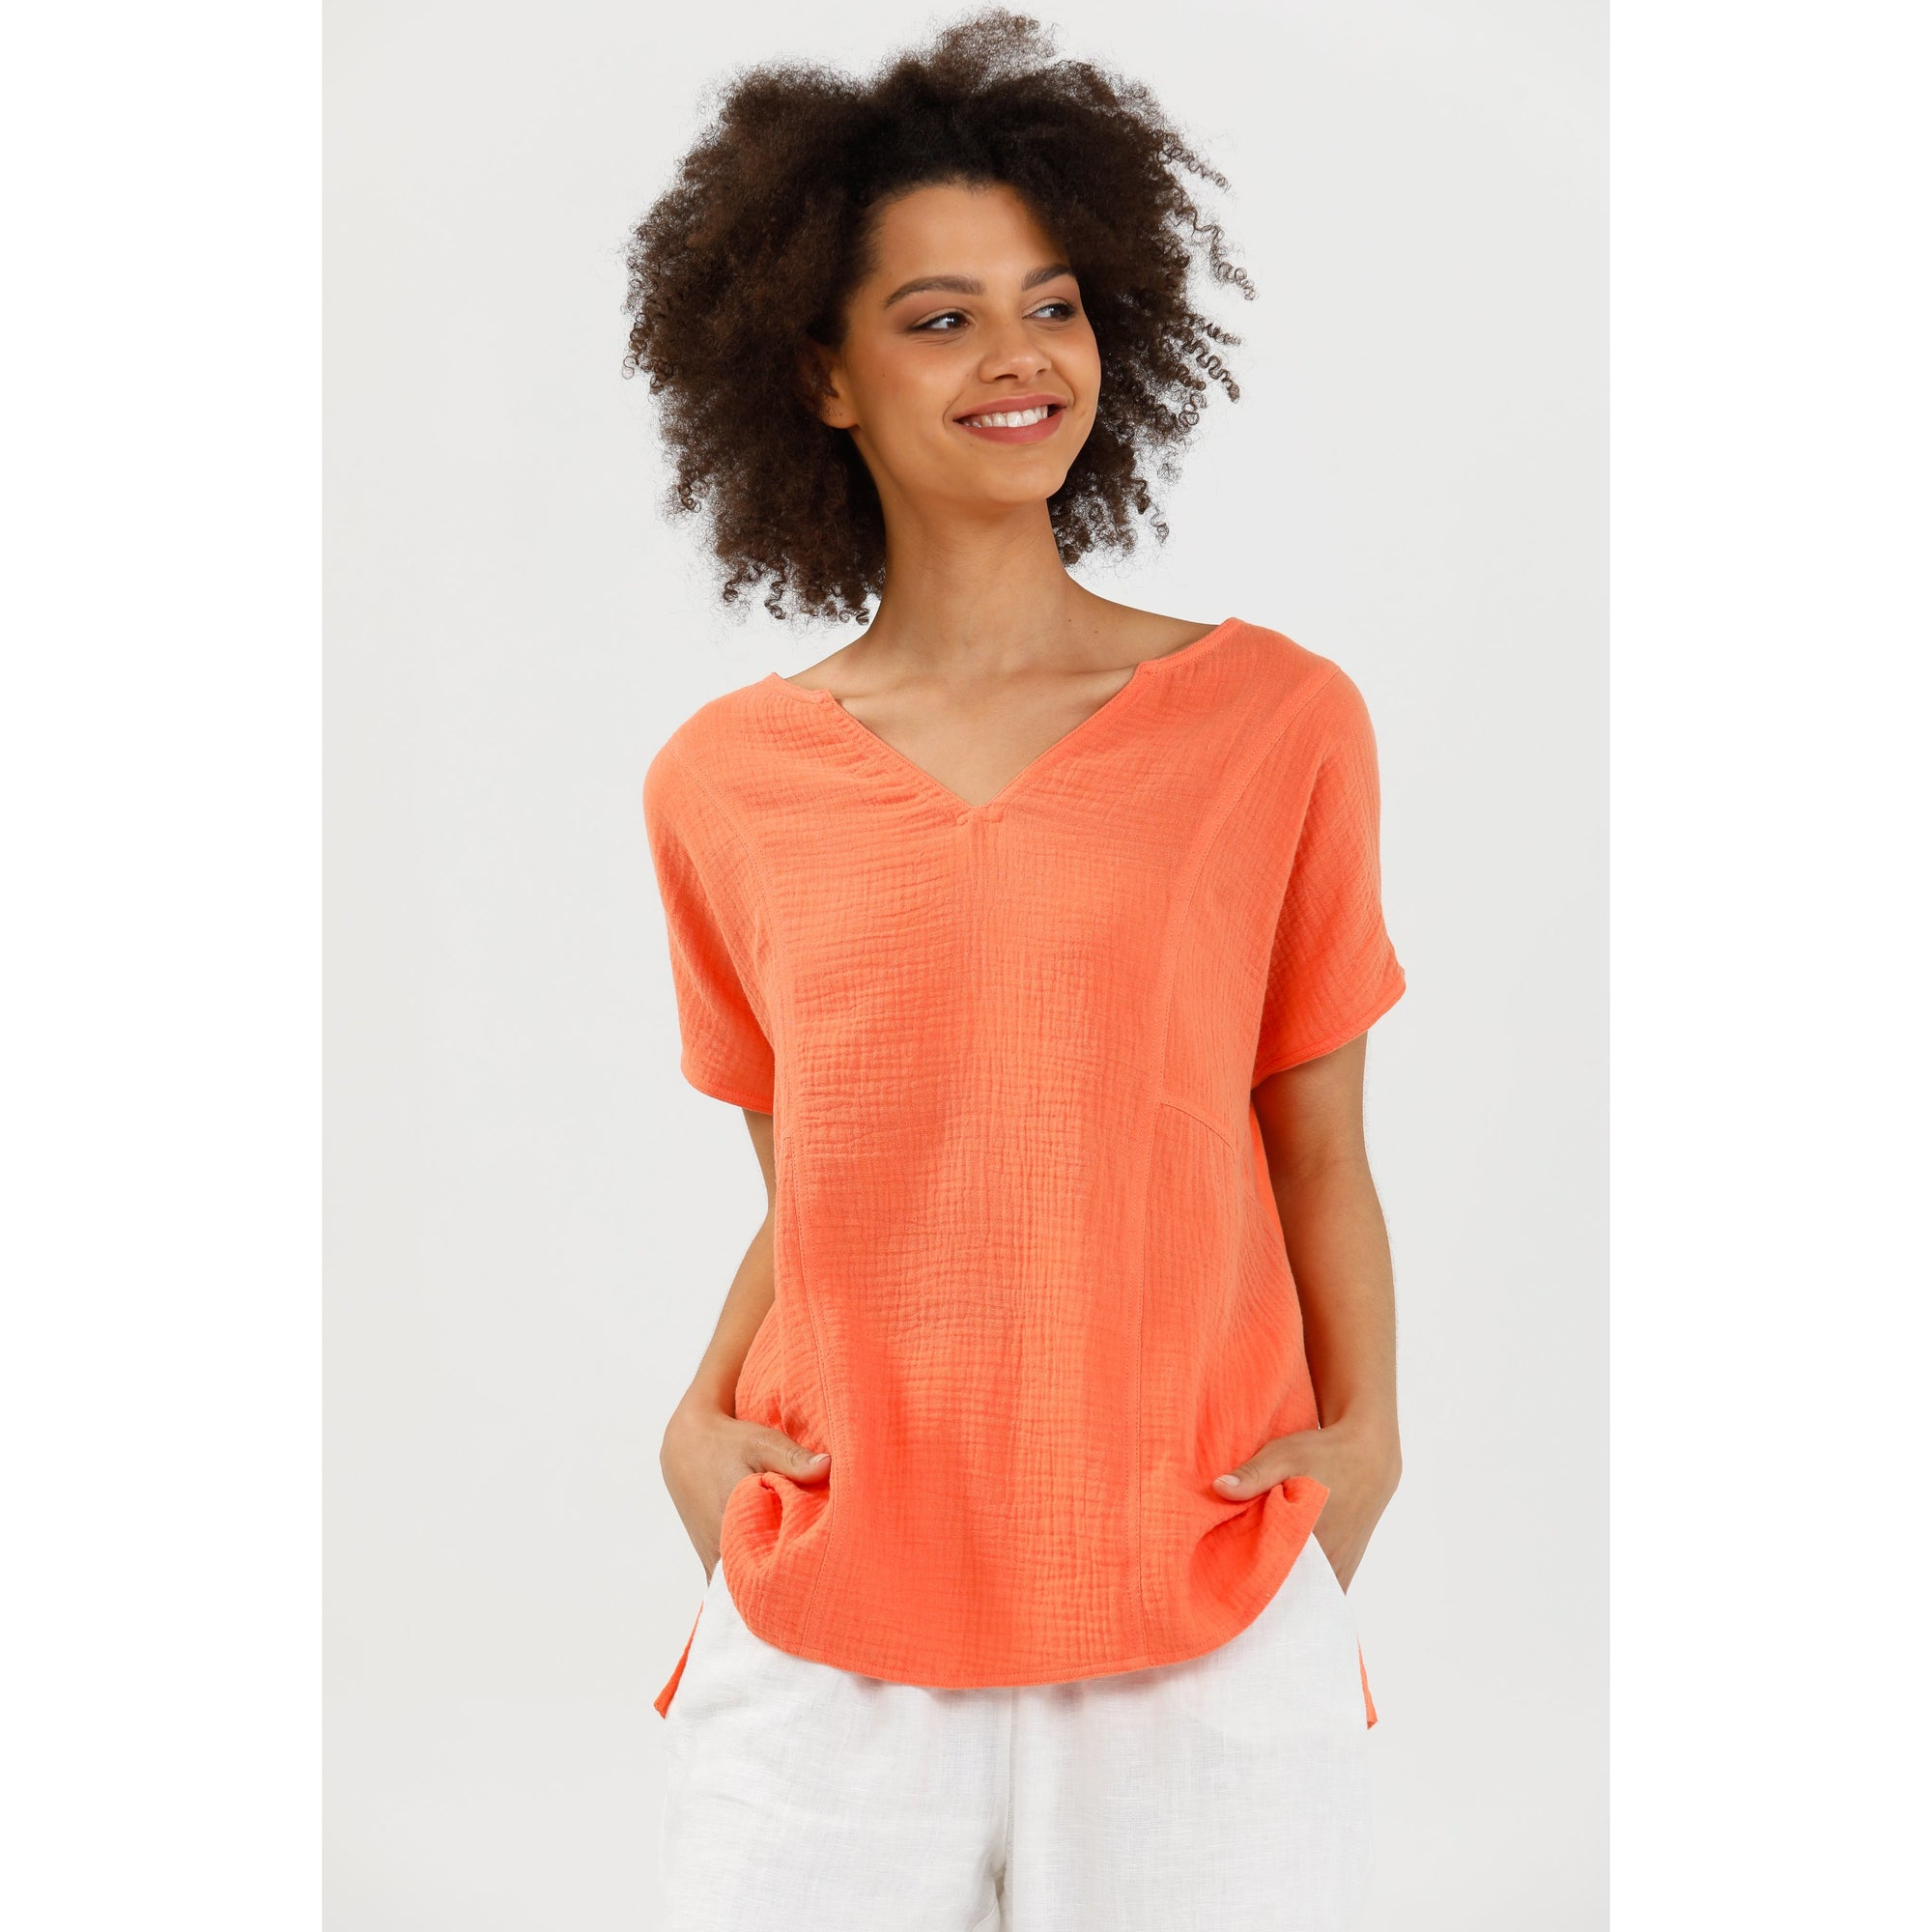 Brave+True Celeste Short Sleeve Cotton Top in Coral